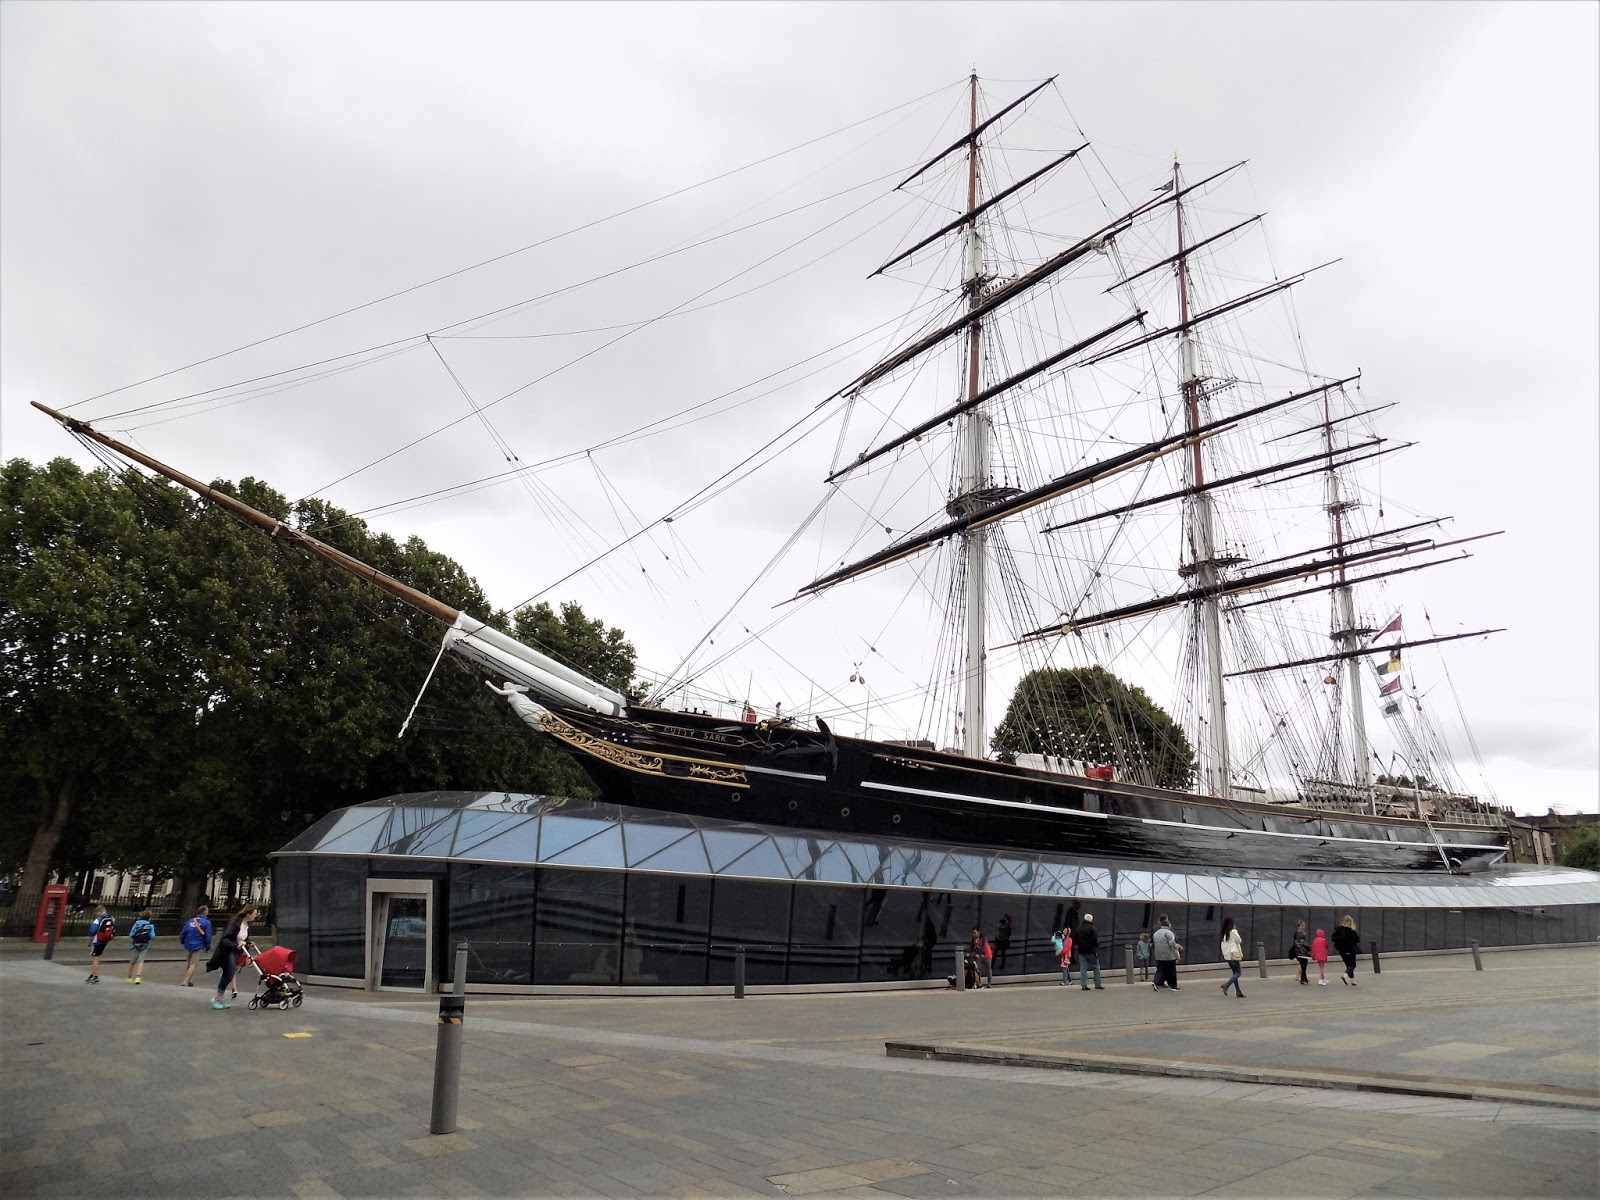 Cutty Sark Cutty Sark Museum A Showcase Of The Greatest Ship Of Her